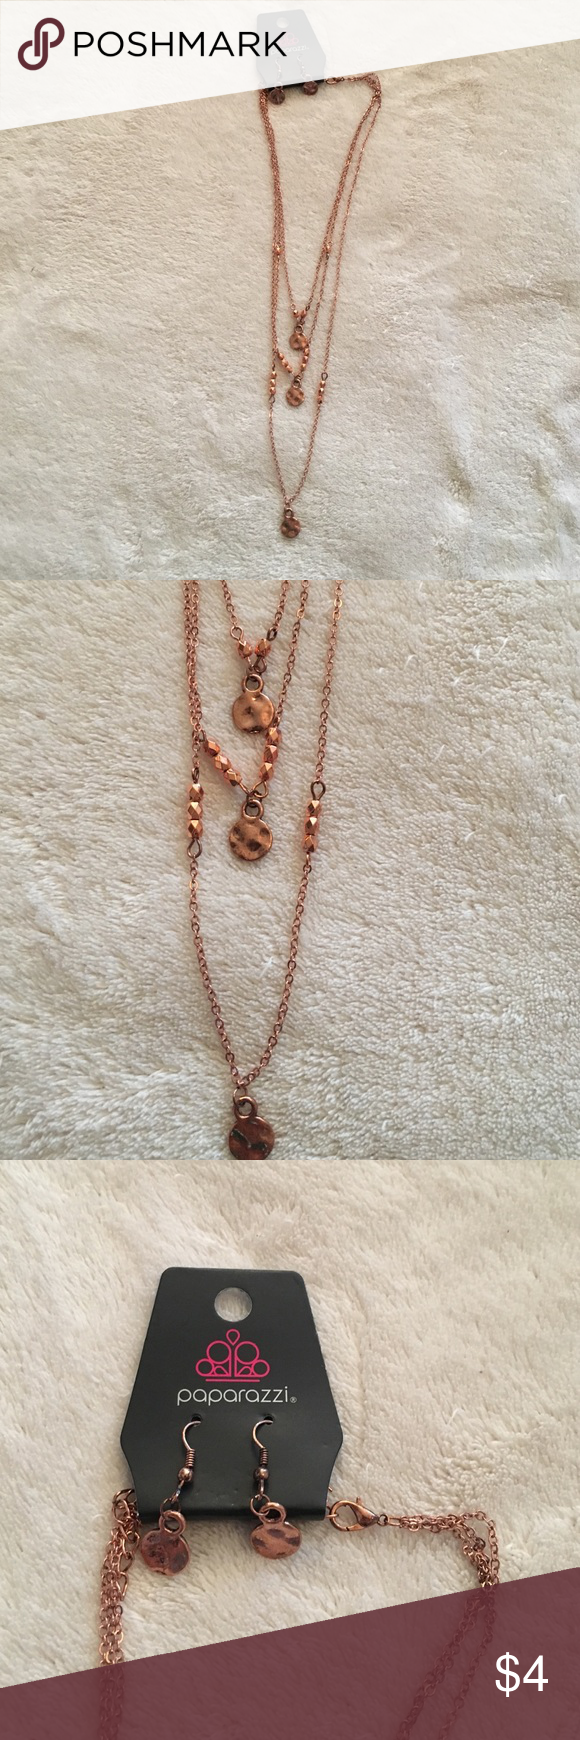 Costume jewelry necklace and earrings Looks similar to rose gold